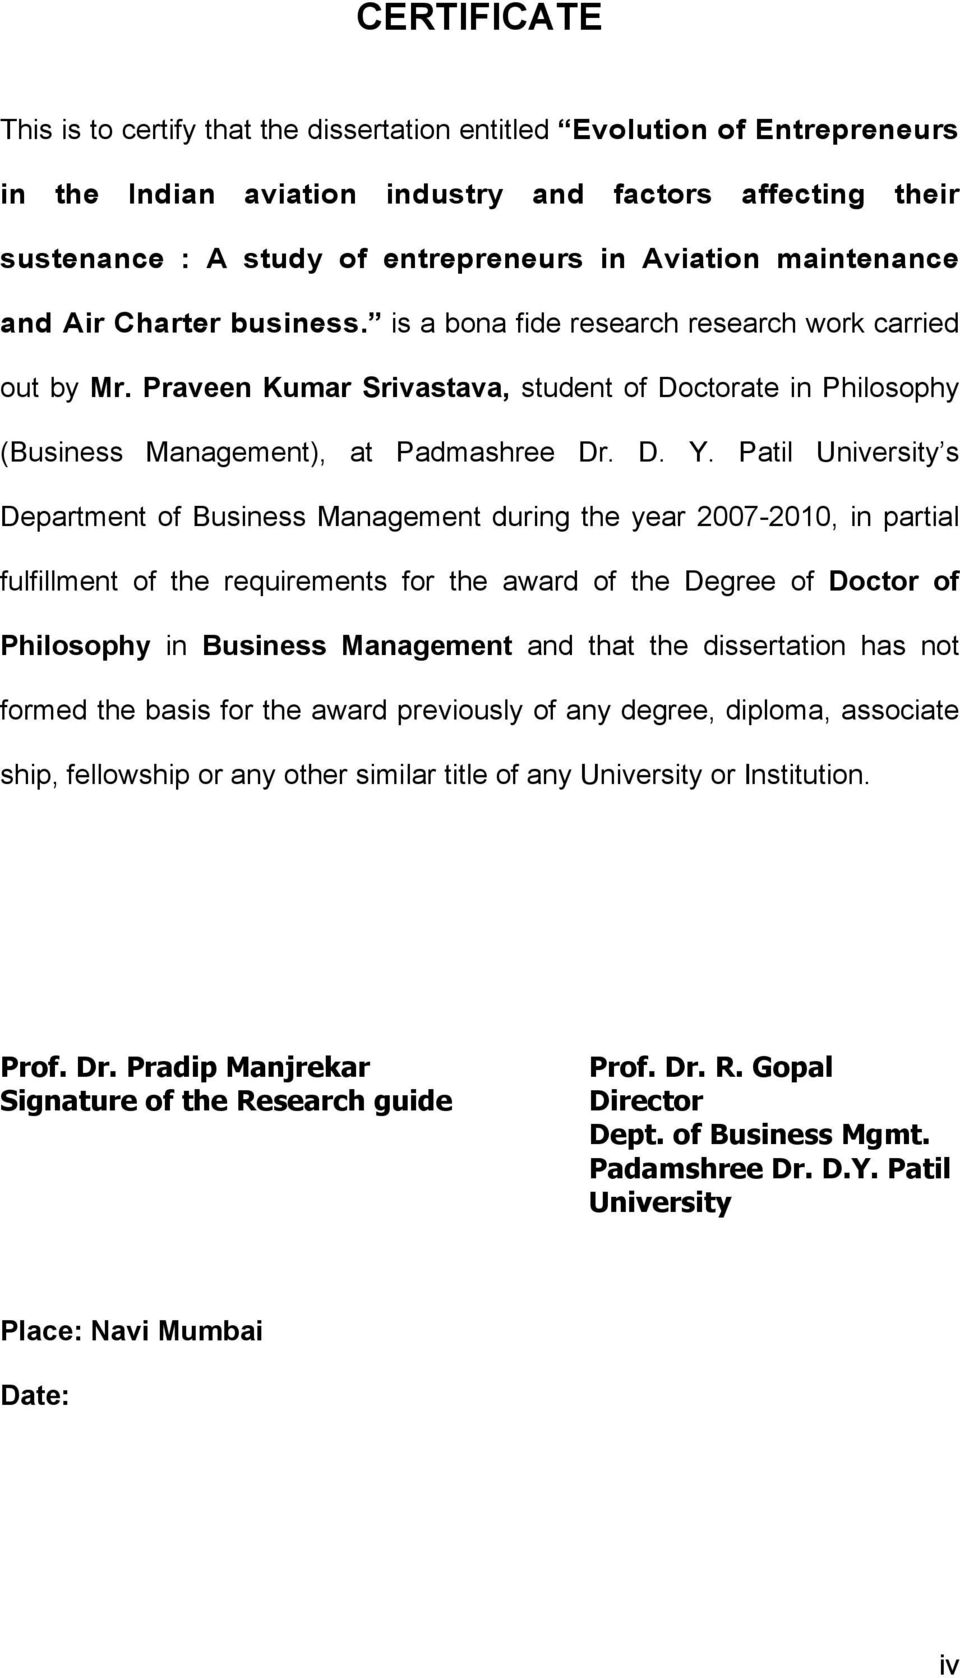 Patil University s Department of Business Management during the year 2007-2010, in partial fulfillment of the requirements for the award of the Degree of Doctor of Philosophy in Business Management